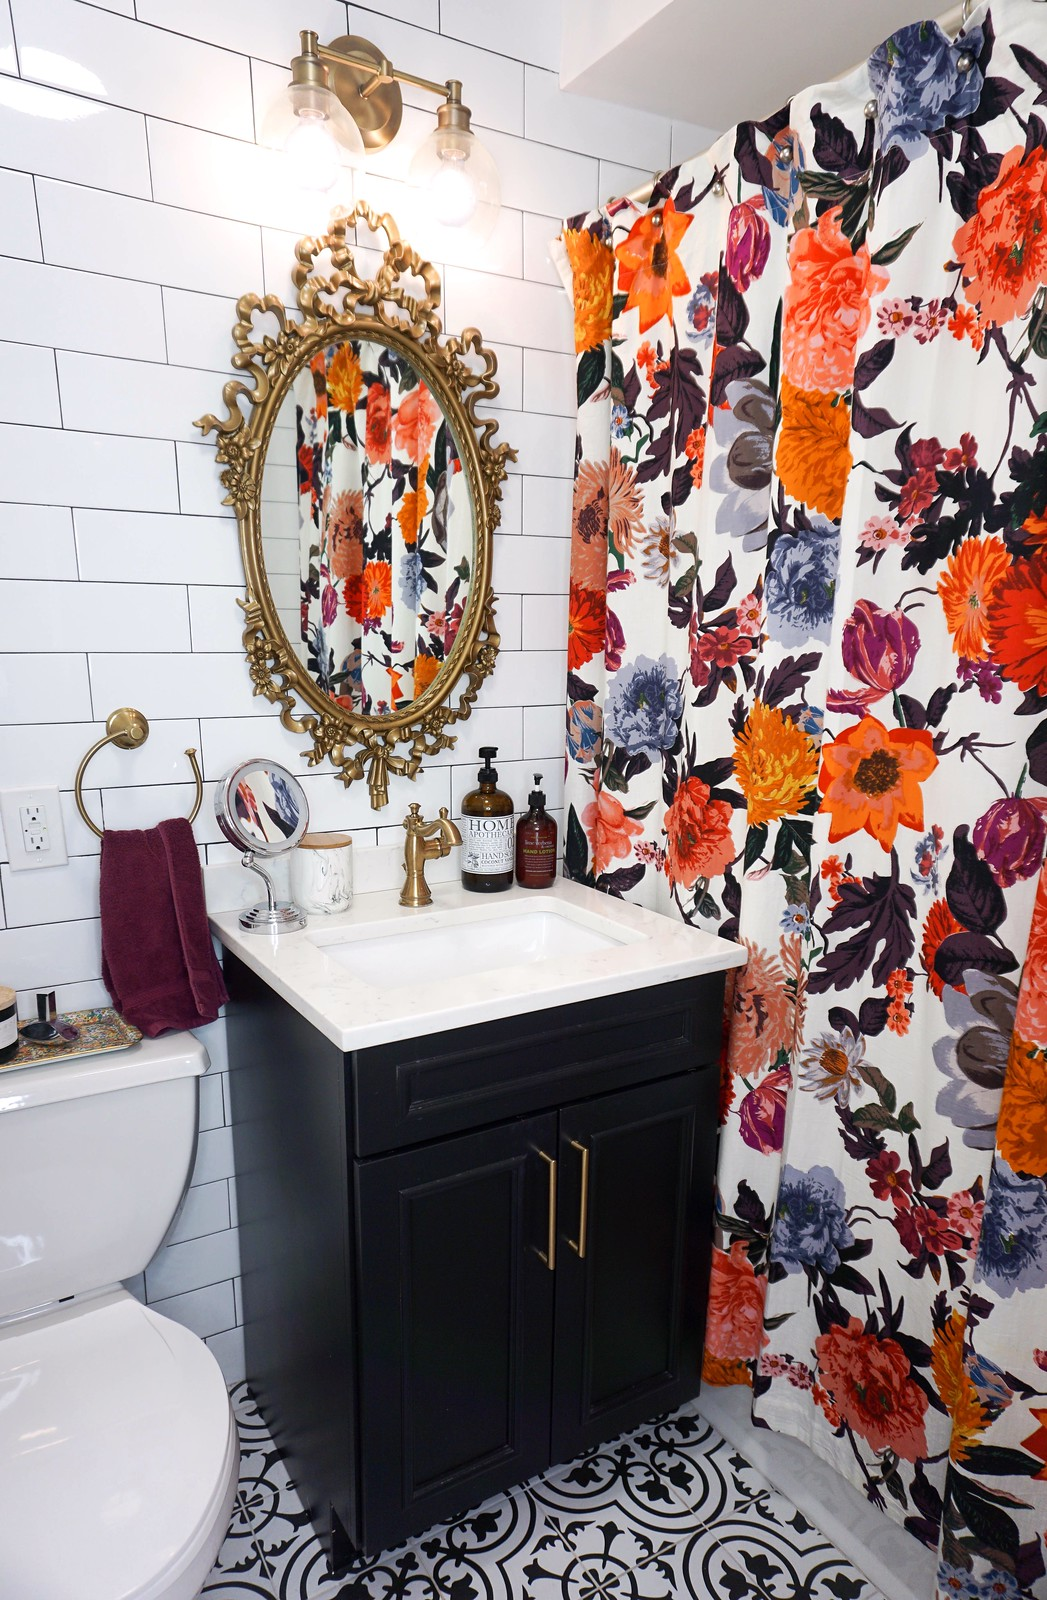 Eclectic Boho Colorful Small Bathroom | Gold Antique Mirror and Fixtures | Anthropologie Agneta Shower Curtain | Floor to Ceiling White Subway Tile | Black and White Porcelain Tile Floor